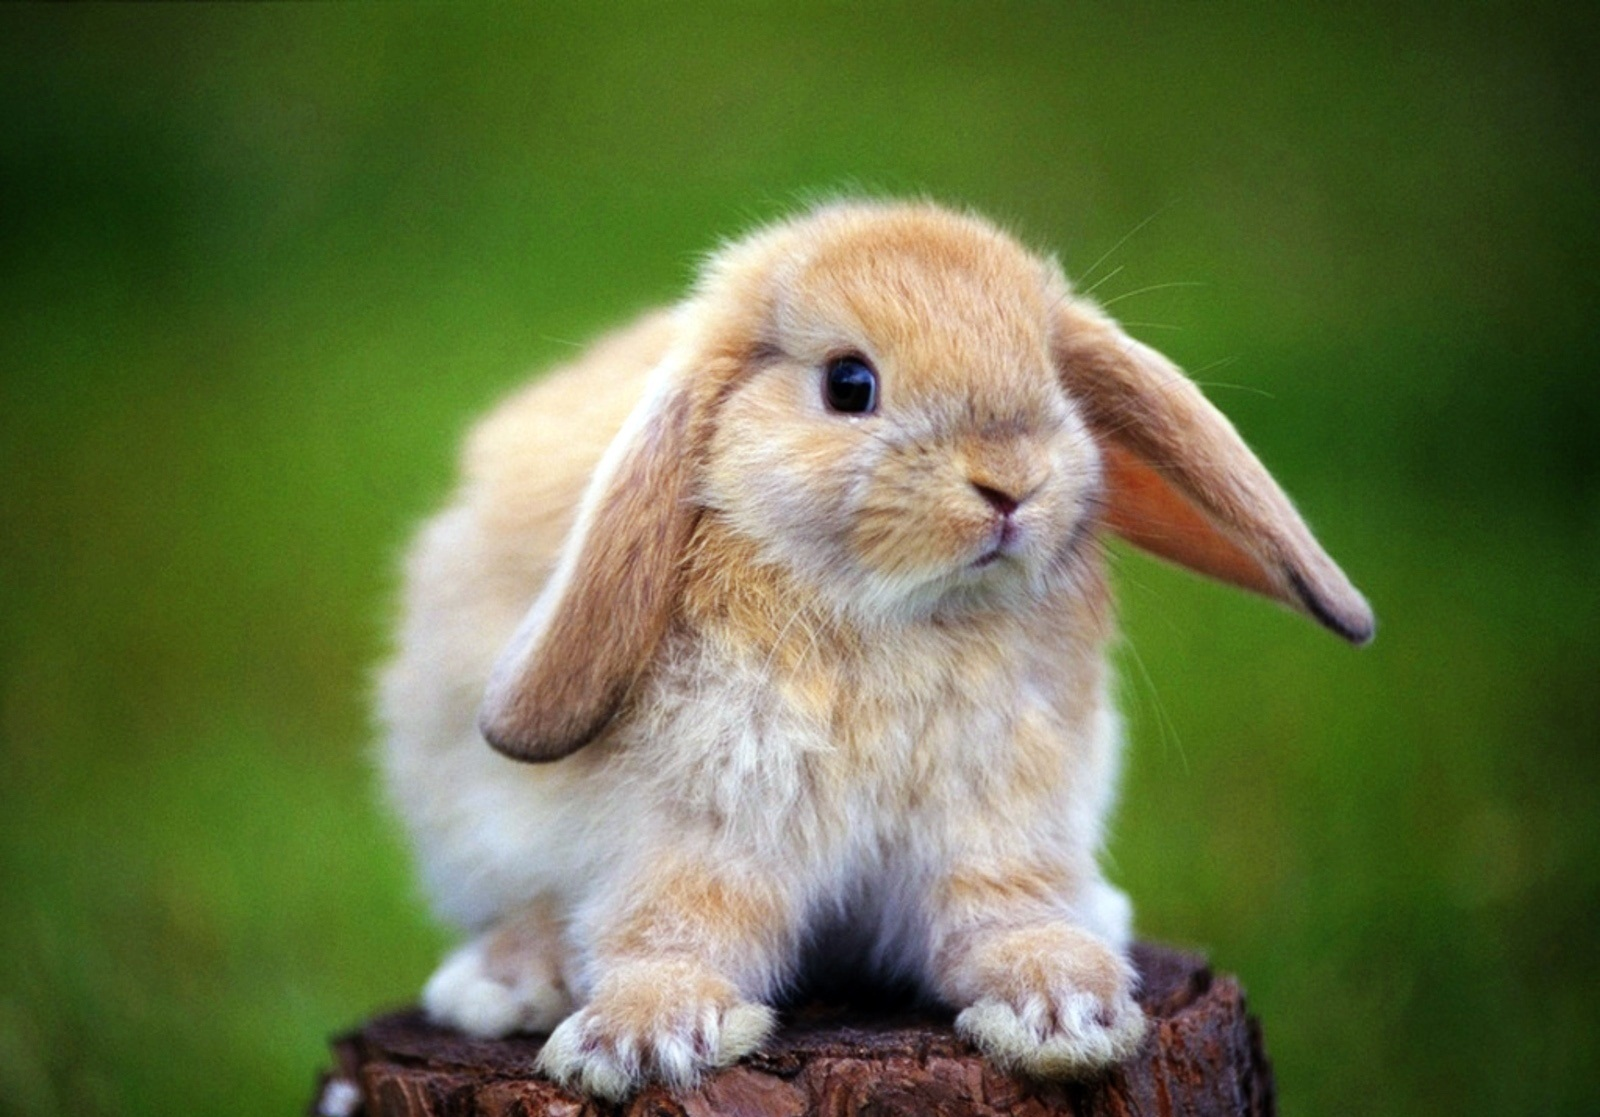 22967 download wallpaper Animals, Rabbits screensavers and pictures for free